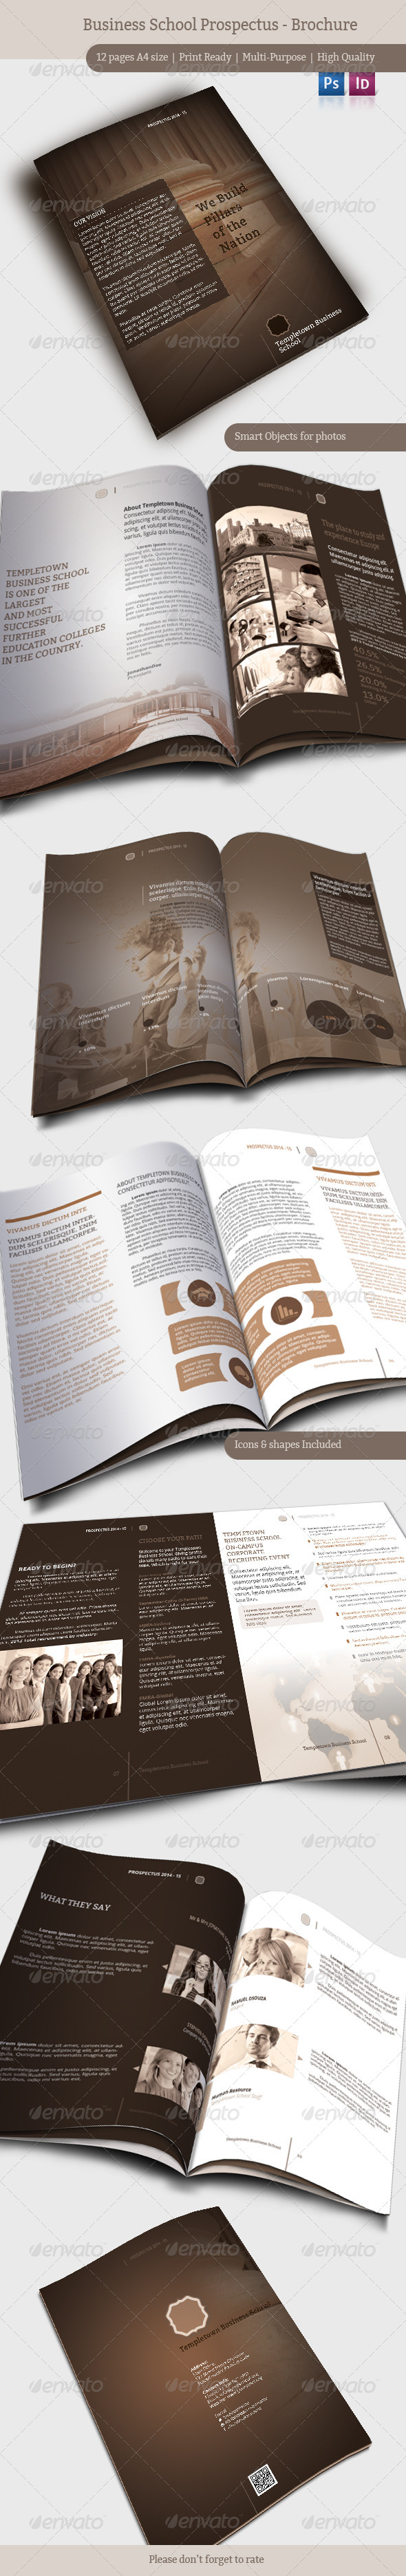 Business School Prospectus - Brochure - Brochures Print Templates